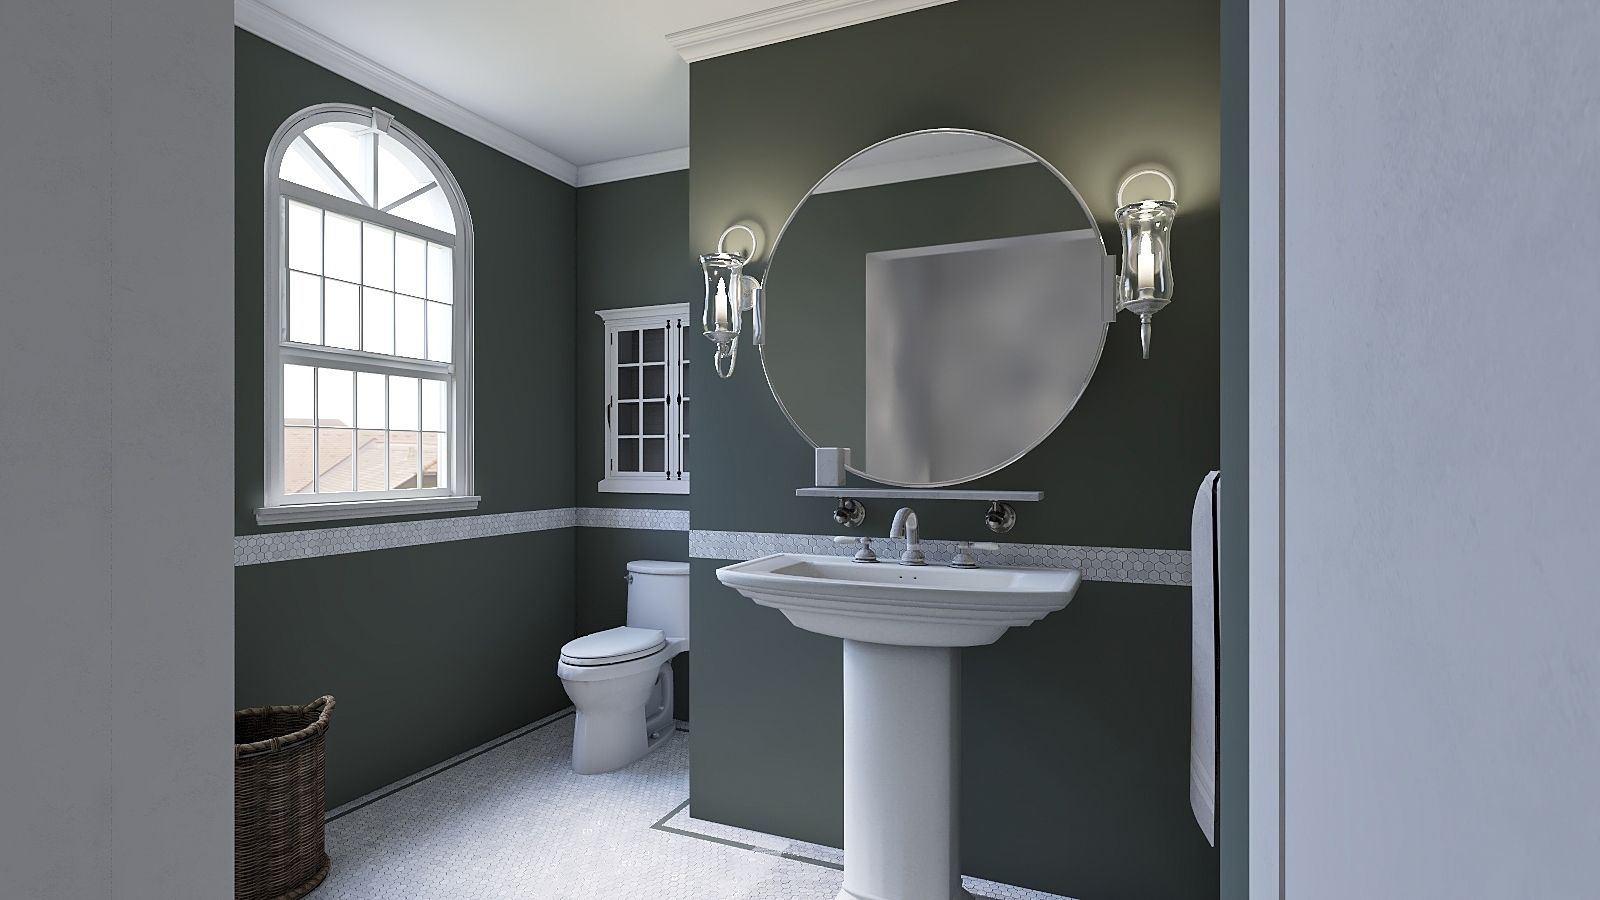 Seattle Bathroom 3d Imagery With Images Round Mirror